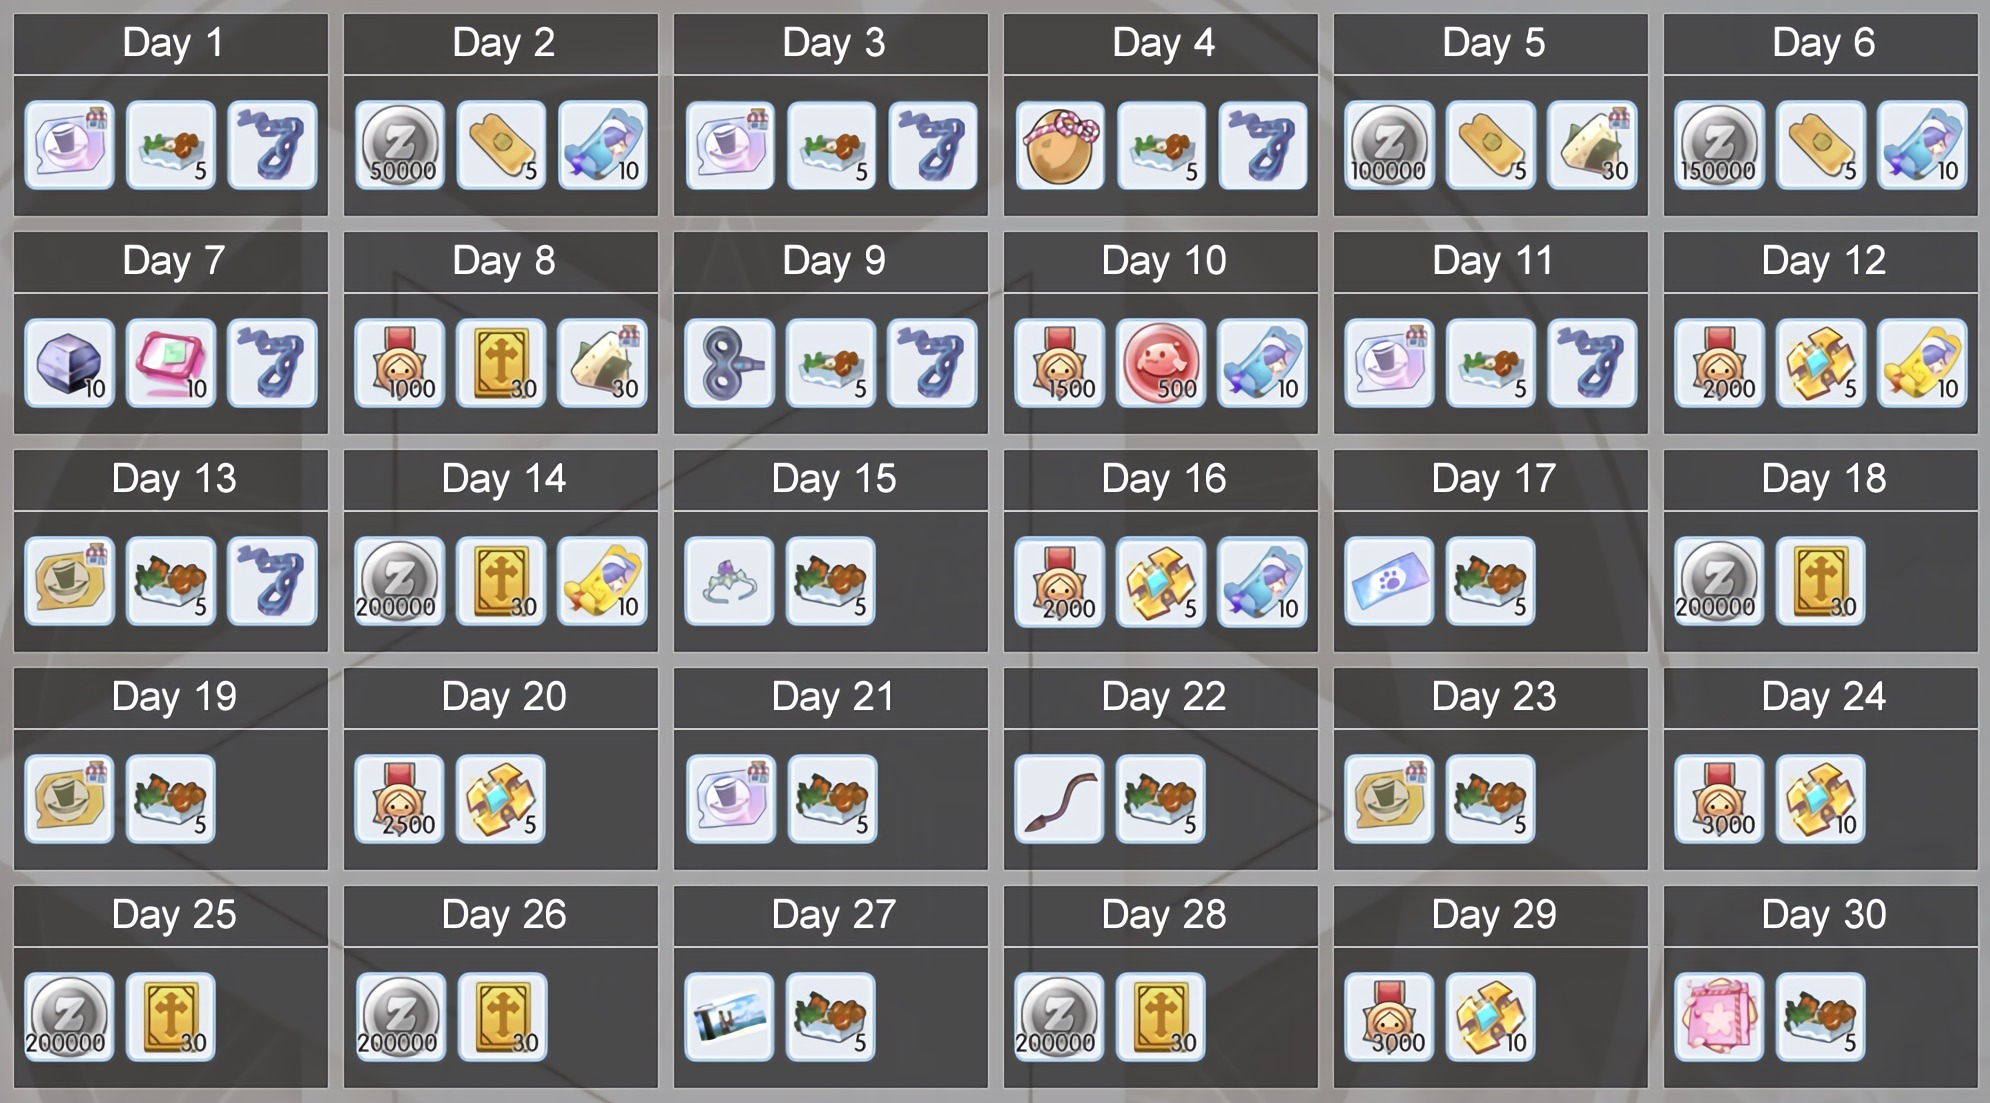 Guide to Daily Login Reward System (Big Cat Sign-in